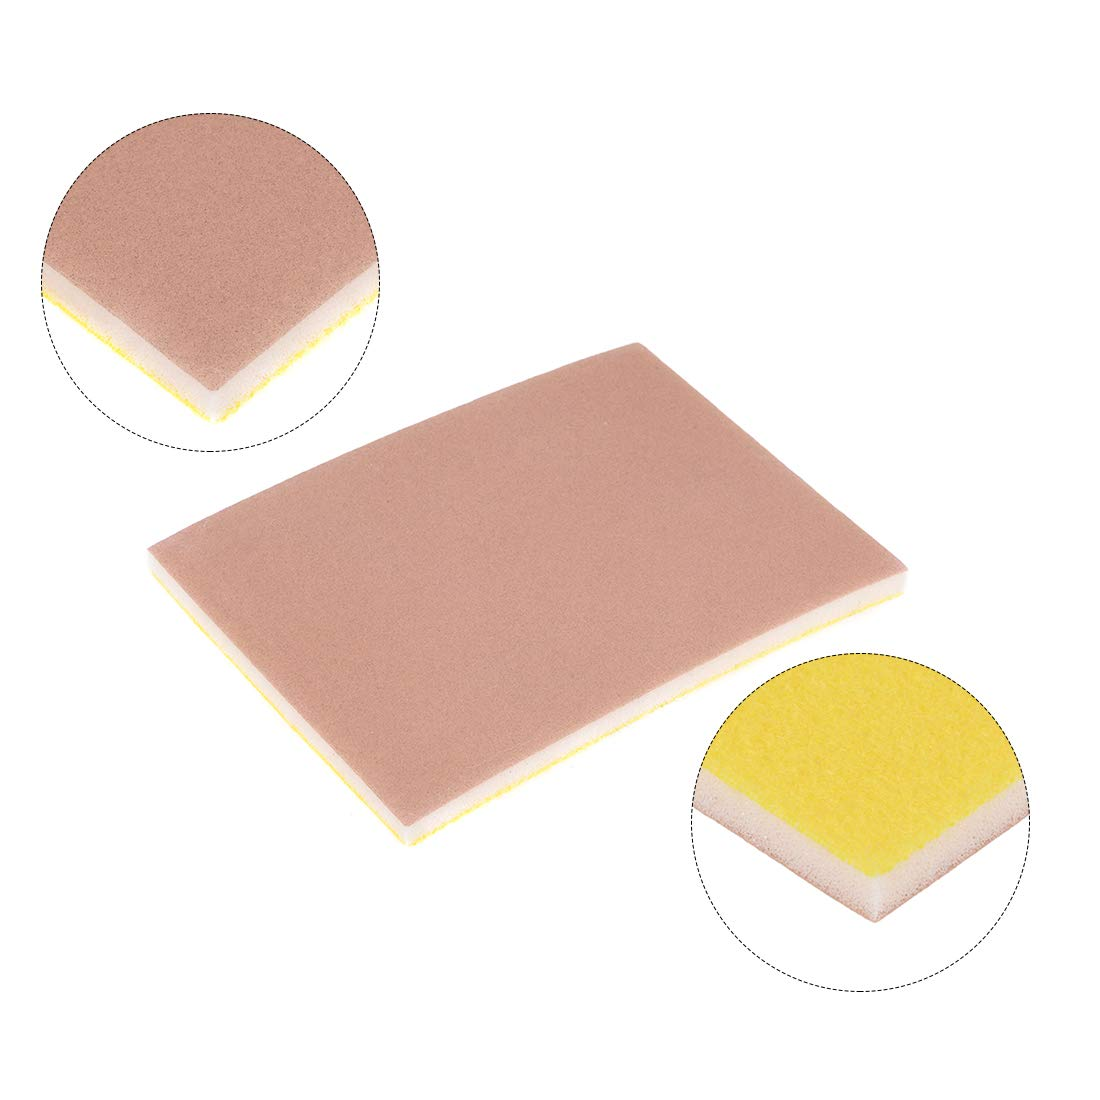 uxcell Sanding Sponge Sanding Block Pad Hook and Loop 400 Grit 3.9inch X 2.8inch X 0.2inch Pink 5pcs